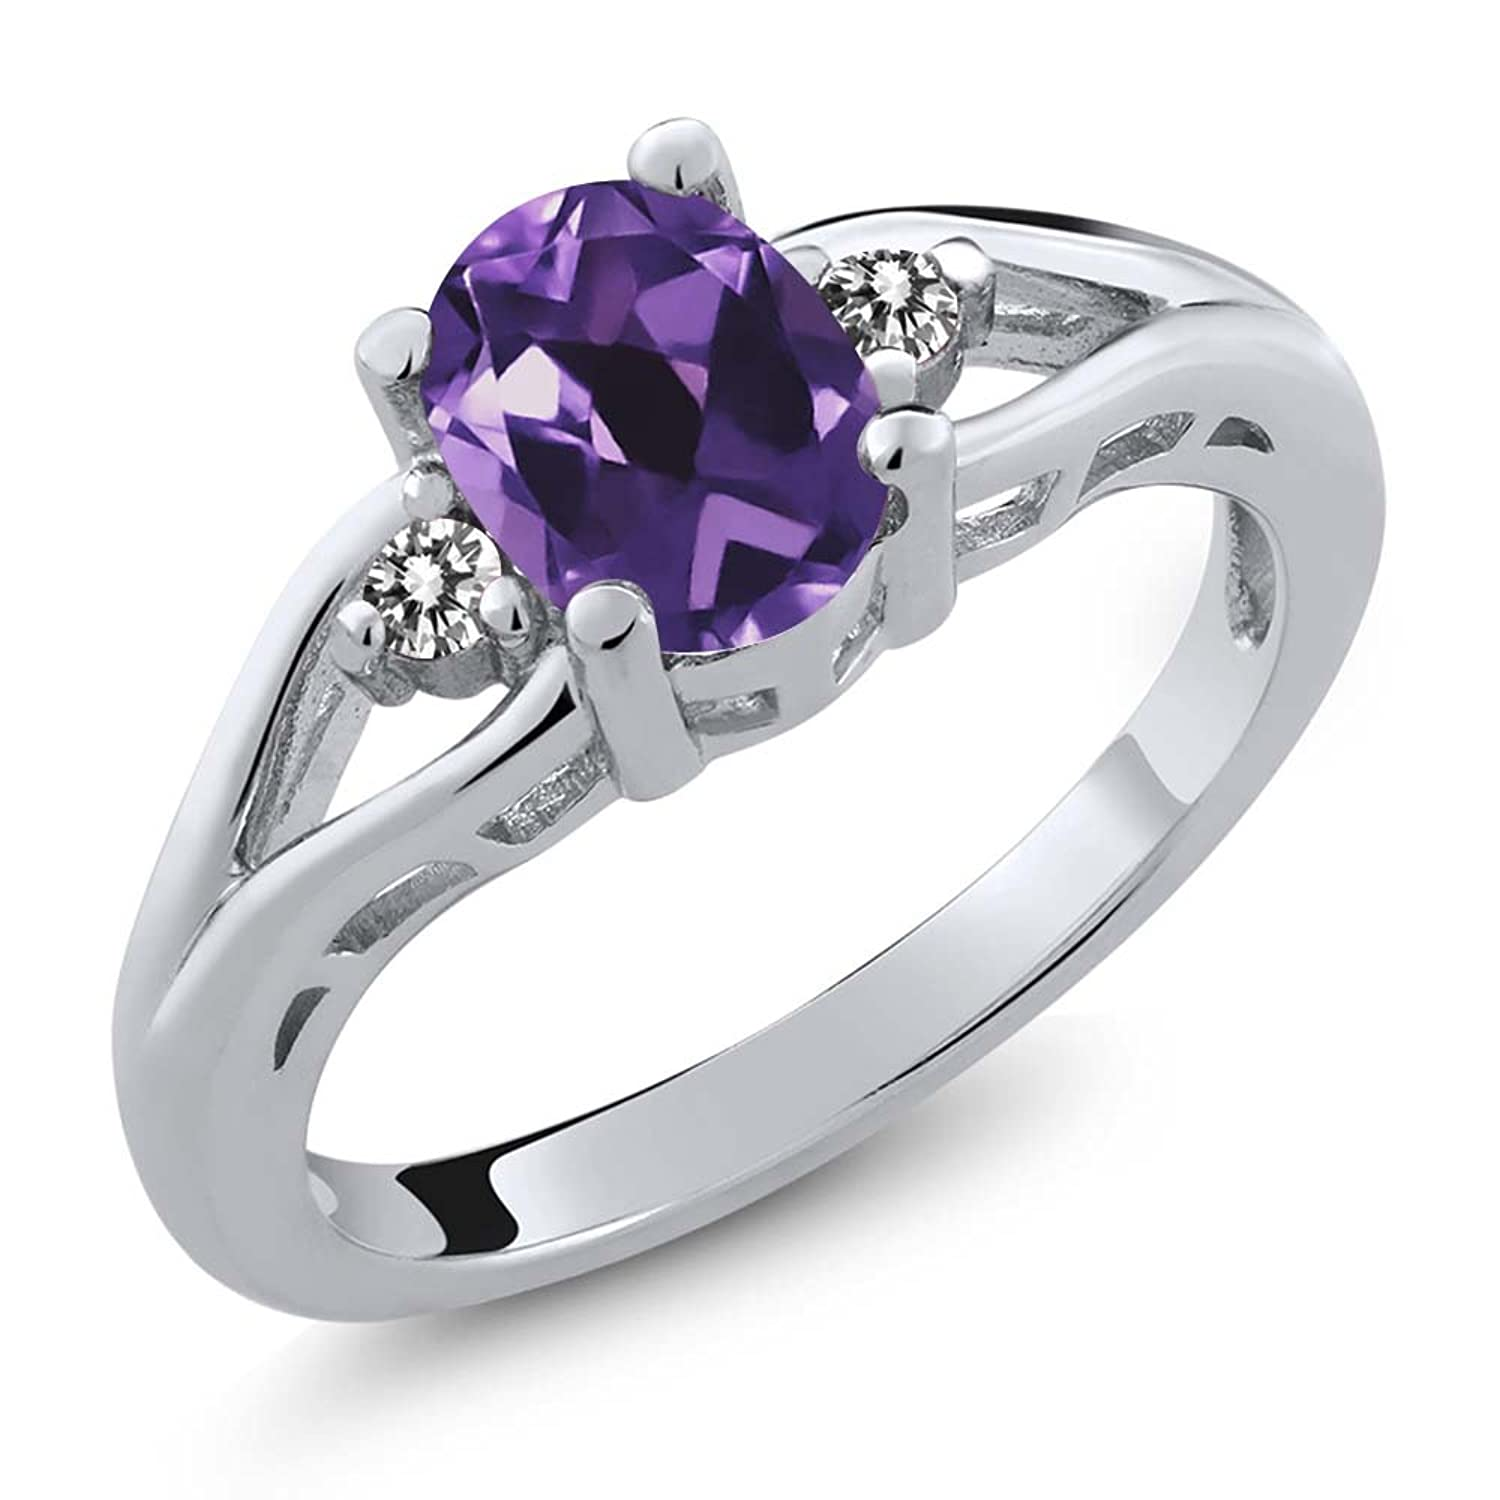 1.16 Ct Oval Amethyst and White Diamond 925 Silver 3-Stone Ring (Available in size 5, 6, 7, 8, 9)